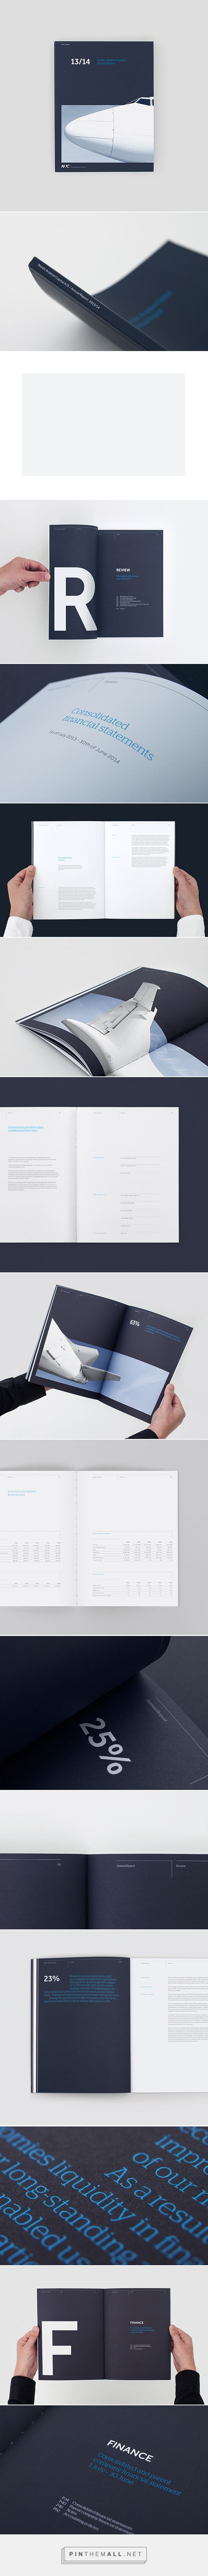 Design pornography clean and simple, pure beauty.  NAC - Annual Report on…